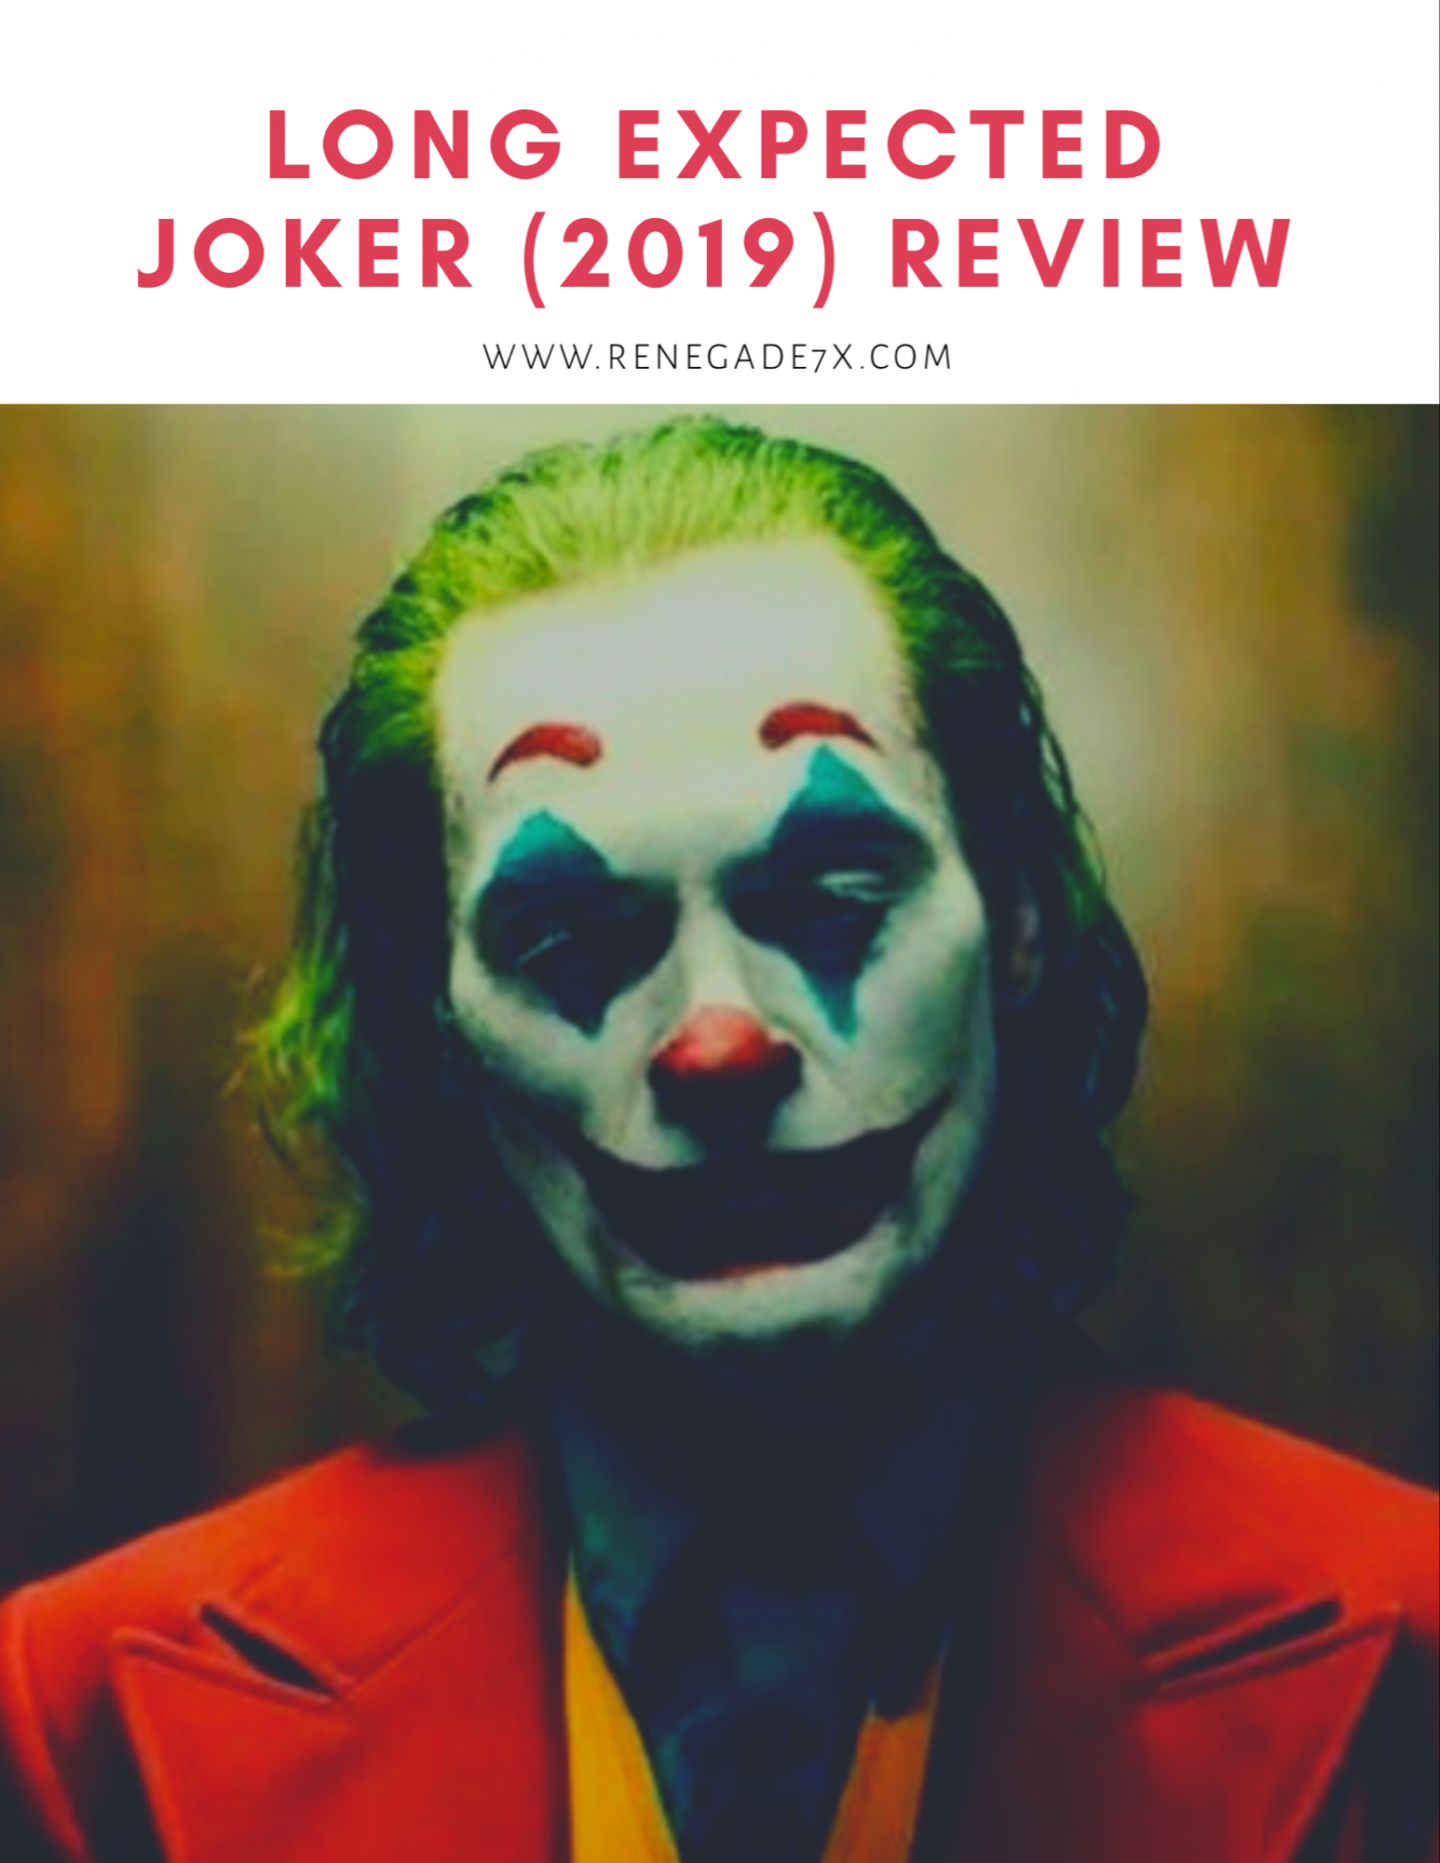 Long expected Joker (2019) review